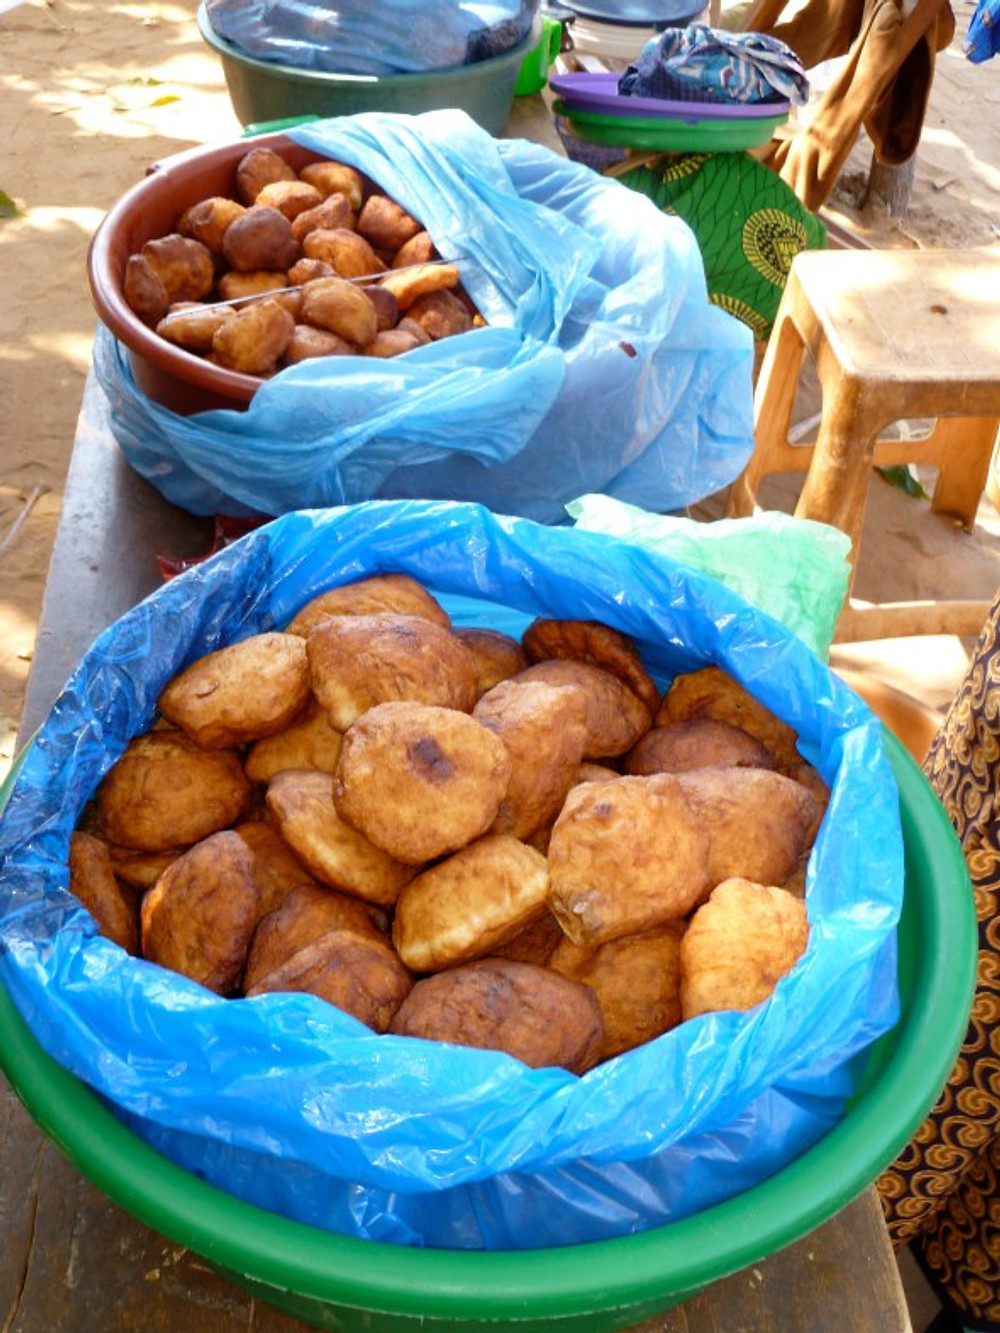 Donuts for sale in the market in Malawi.